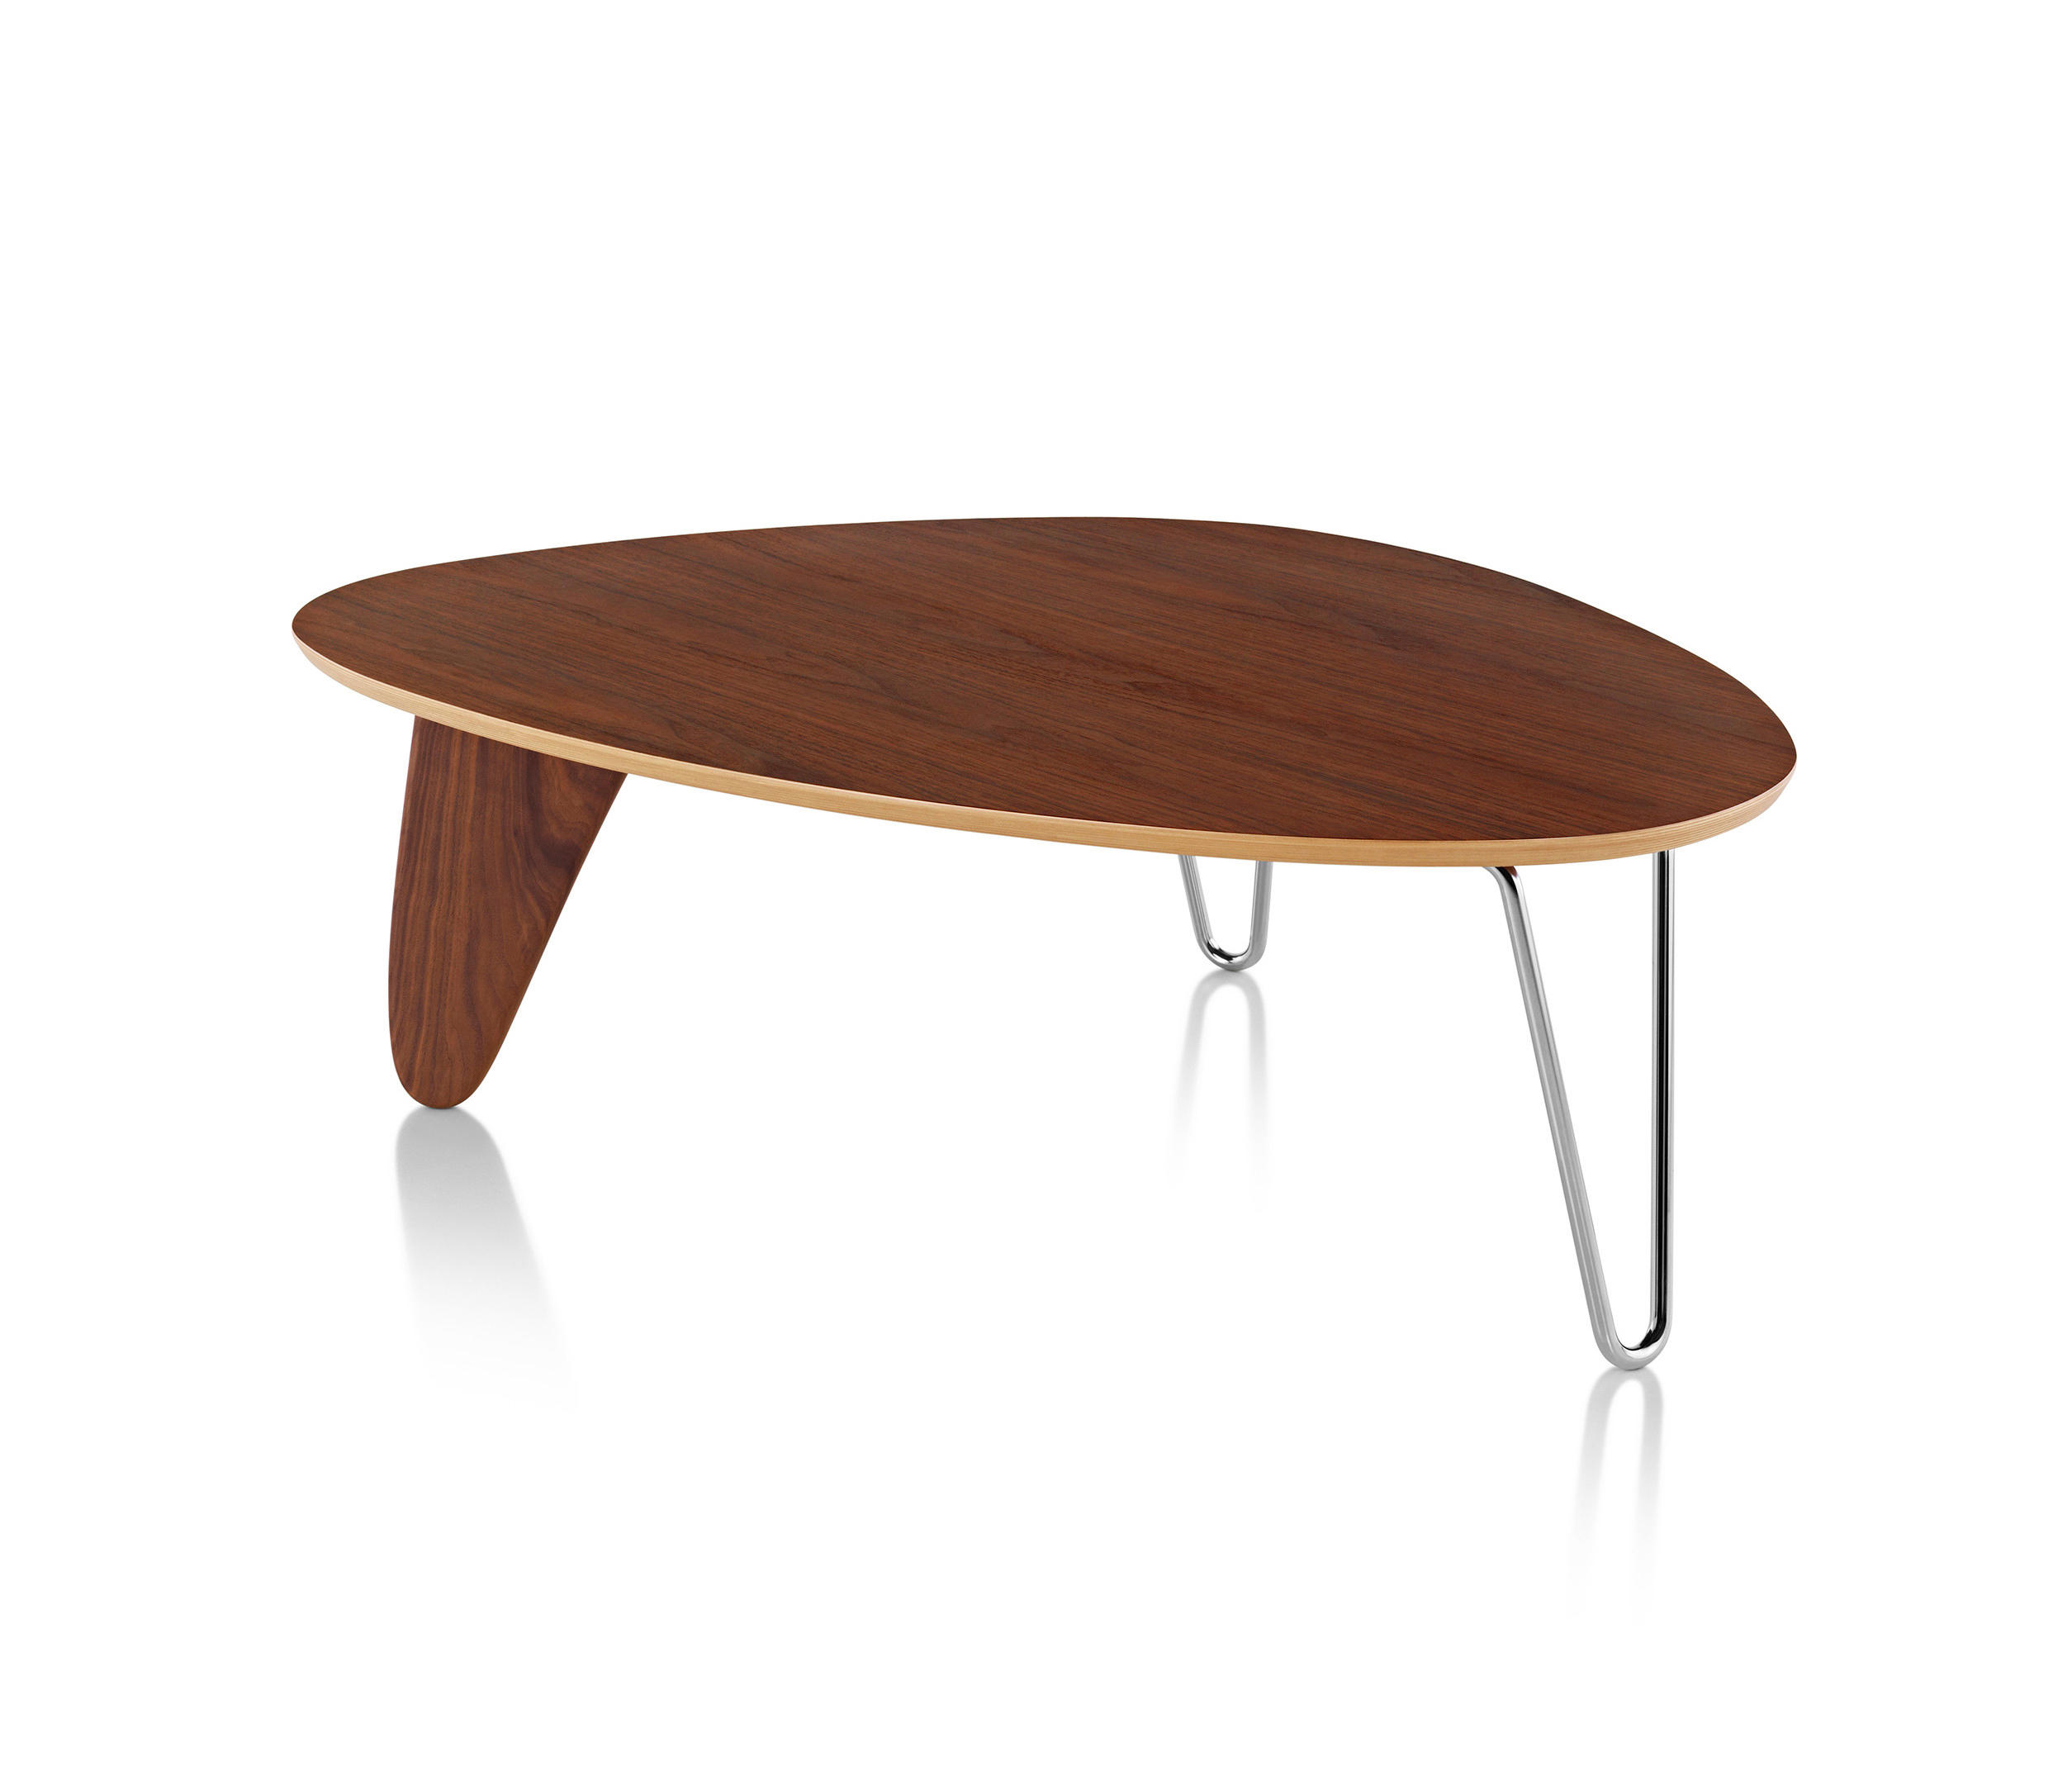 Noguchi Rudder Table Lounge Tables From Herman Miller Architonic